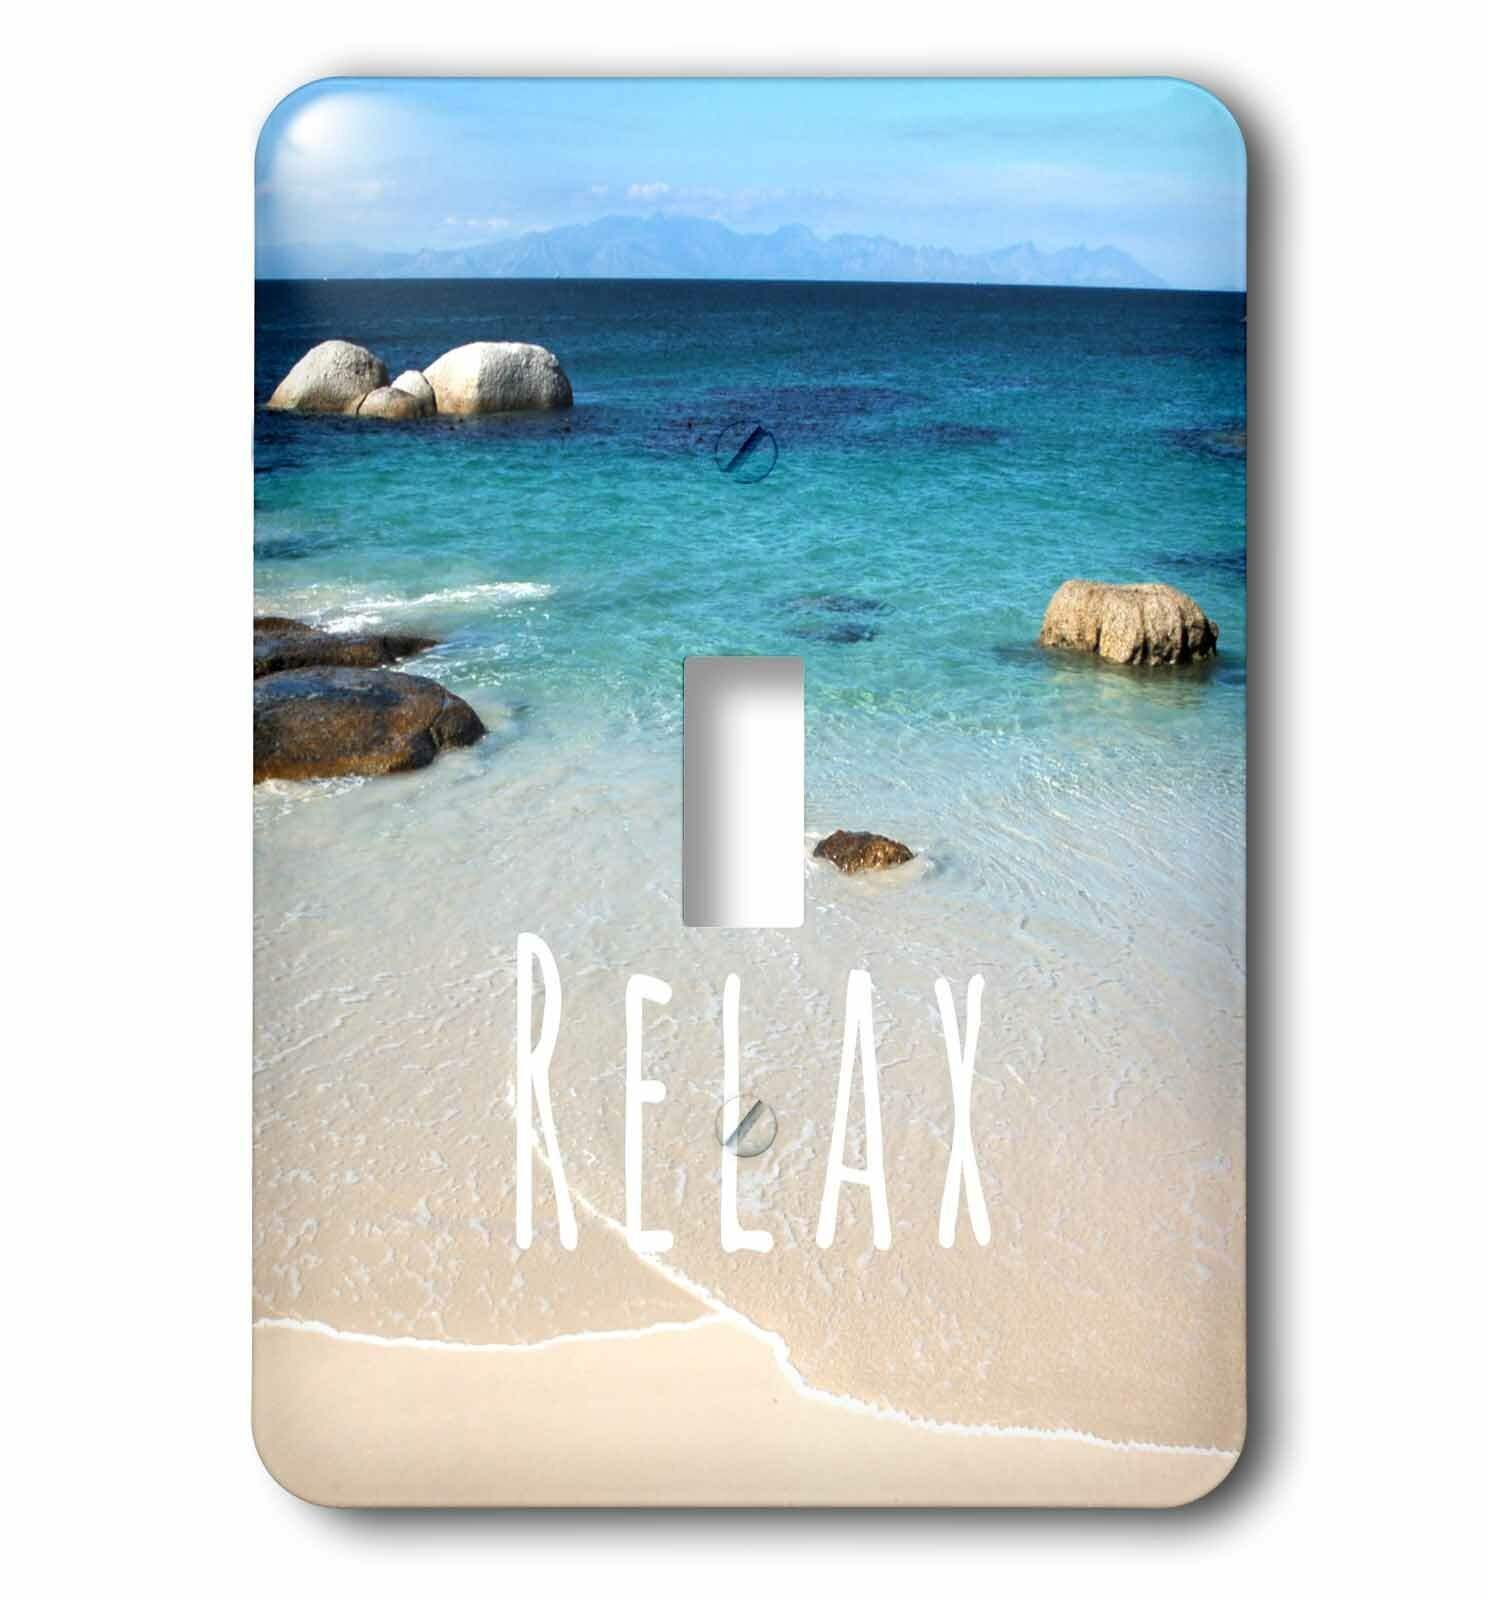 3drose Relax Positive Affirmations Inspiring Motivational Word Beach Photography Calm Ocean Sea 1 Gang Toggle Light Switch Wall Plate Wayfair